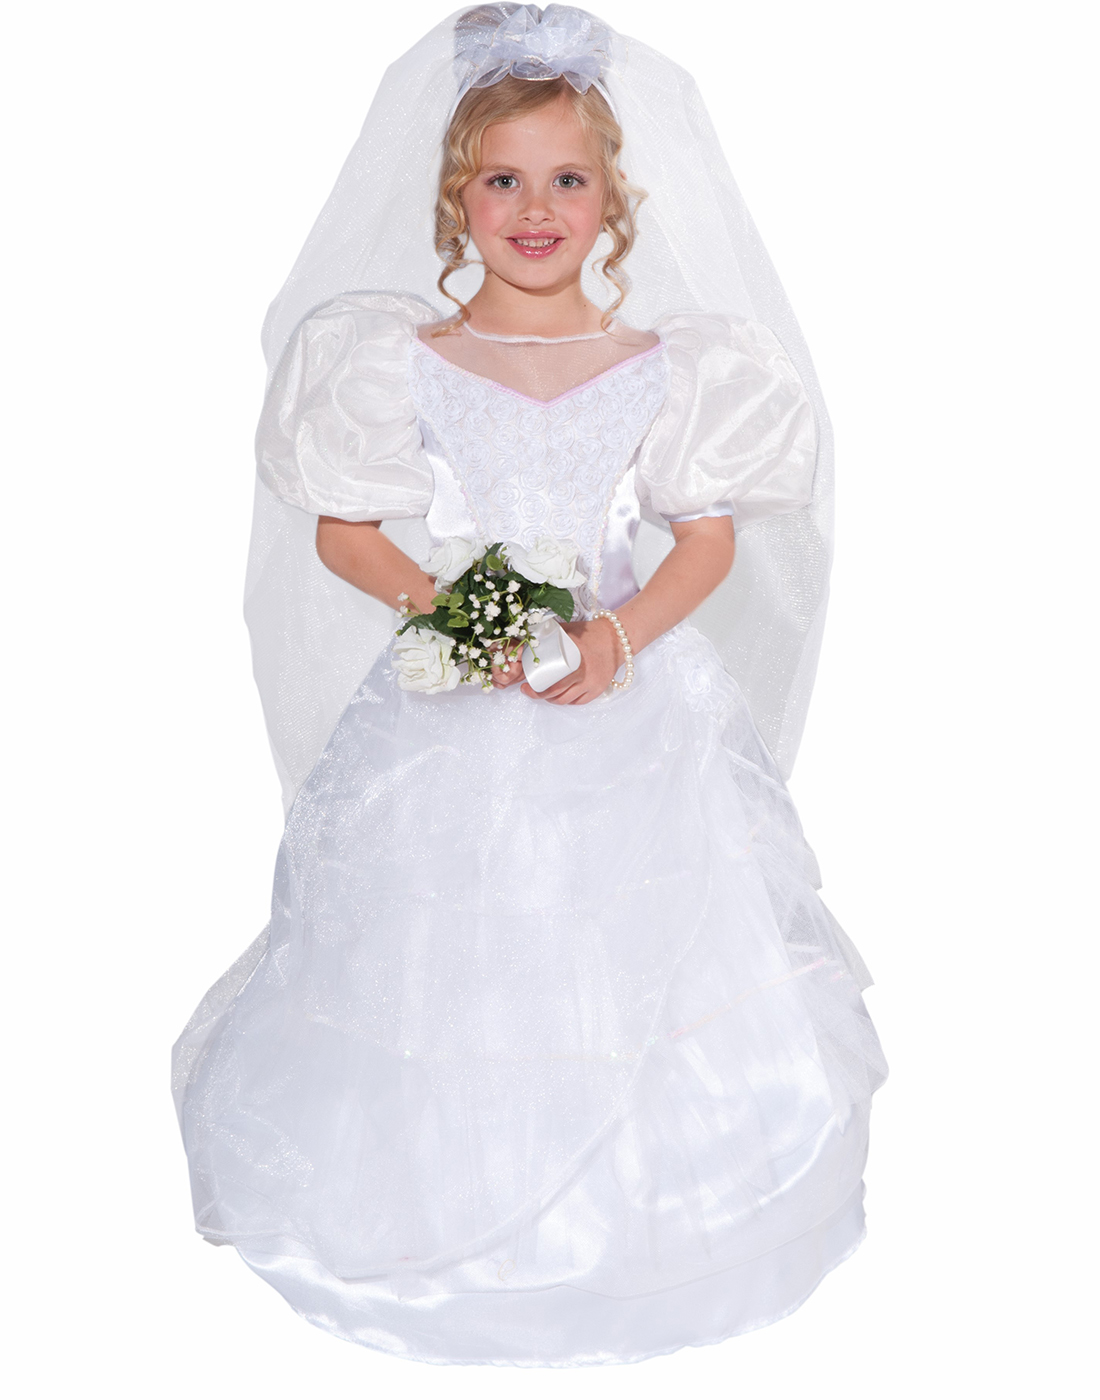 Details about First Dance With Daddy Little Bride Wedding Dress Girl  Halloween Costume